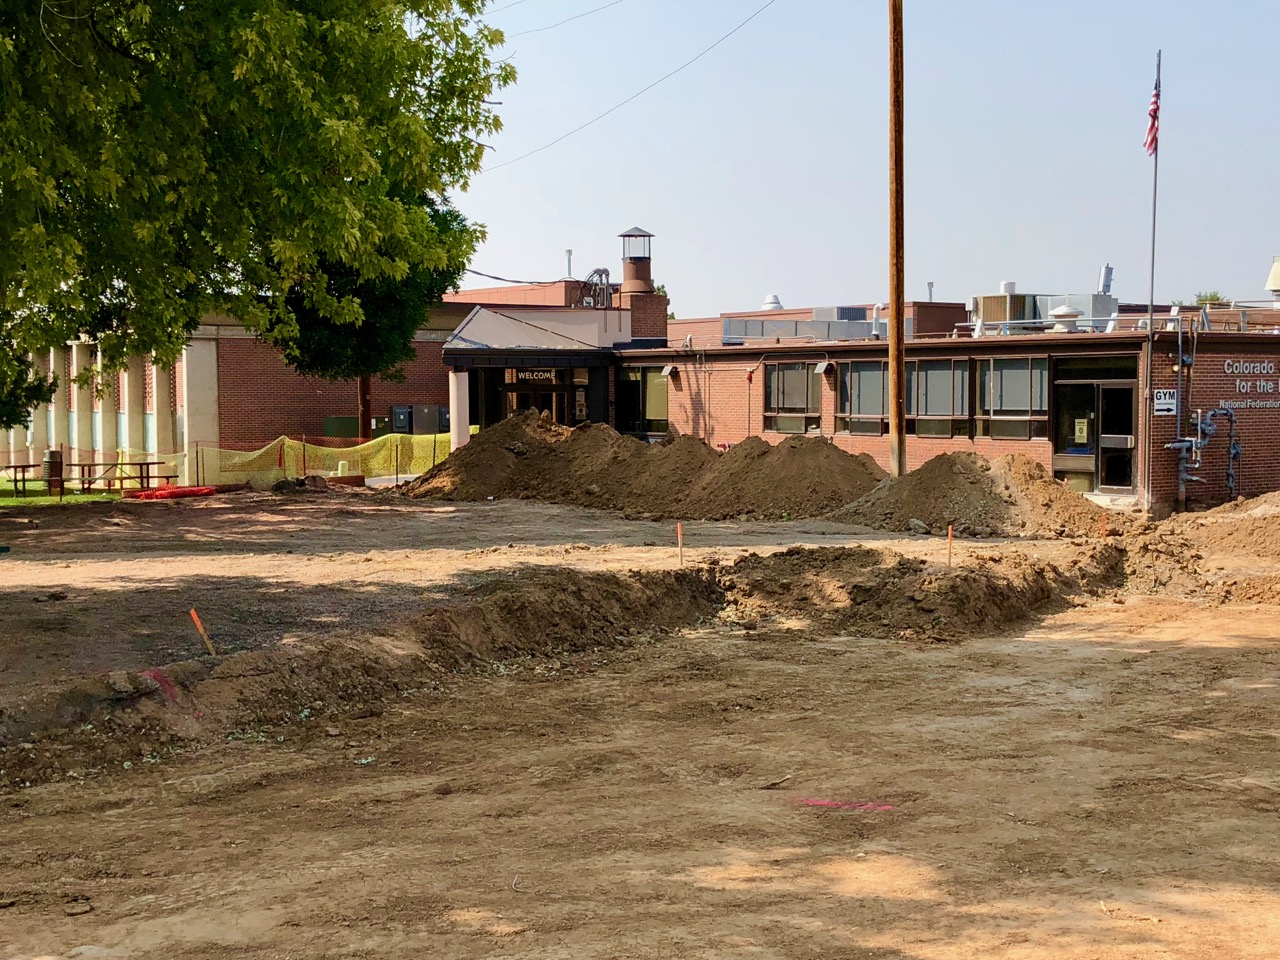 A view of the torn up parking lot in front of the Colorado Center for the blind with excavation trenches and tall mounds of dirt